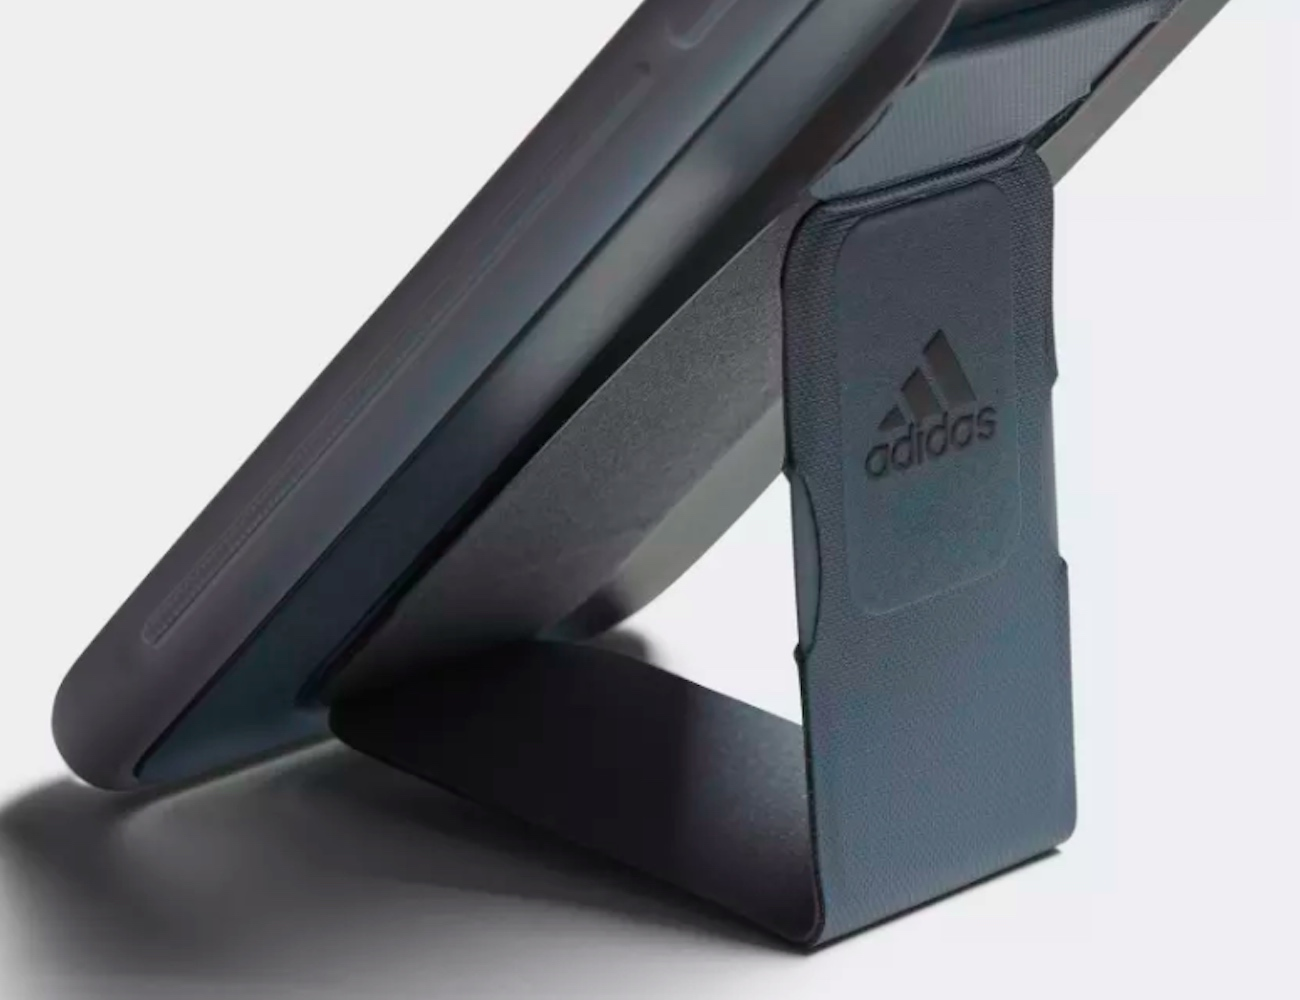 Adidas Training iPhone Grip Case